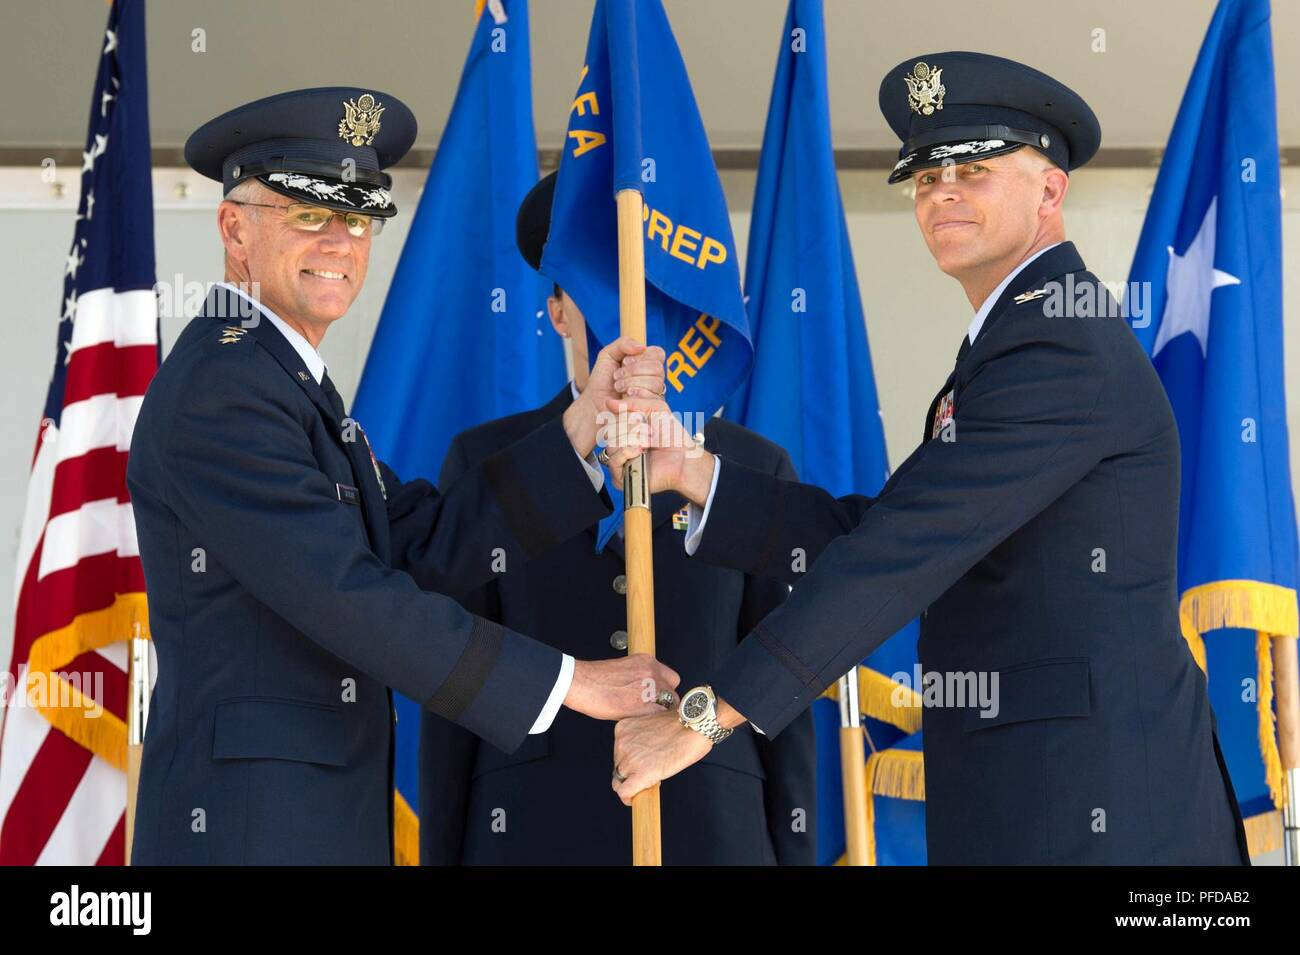 e38fb100818 U.S. Air Force Academy – Col. Timothy W. Thurston II, incoming United  States Air Force Academy Preparatory School commander, assumes command of  the United ...